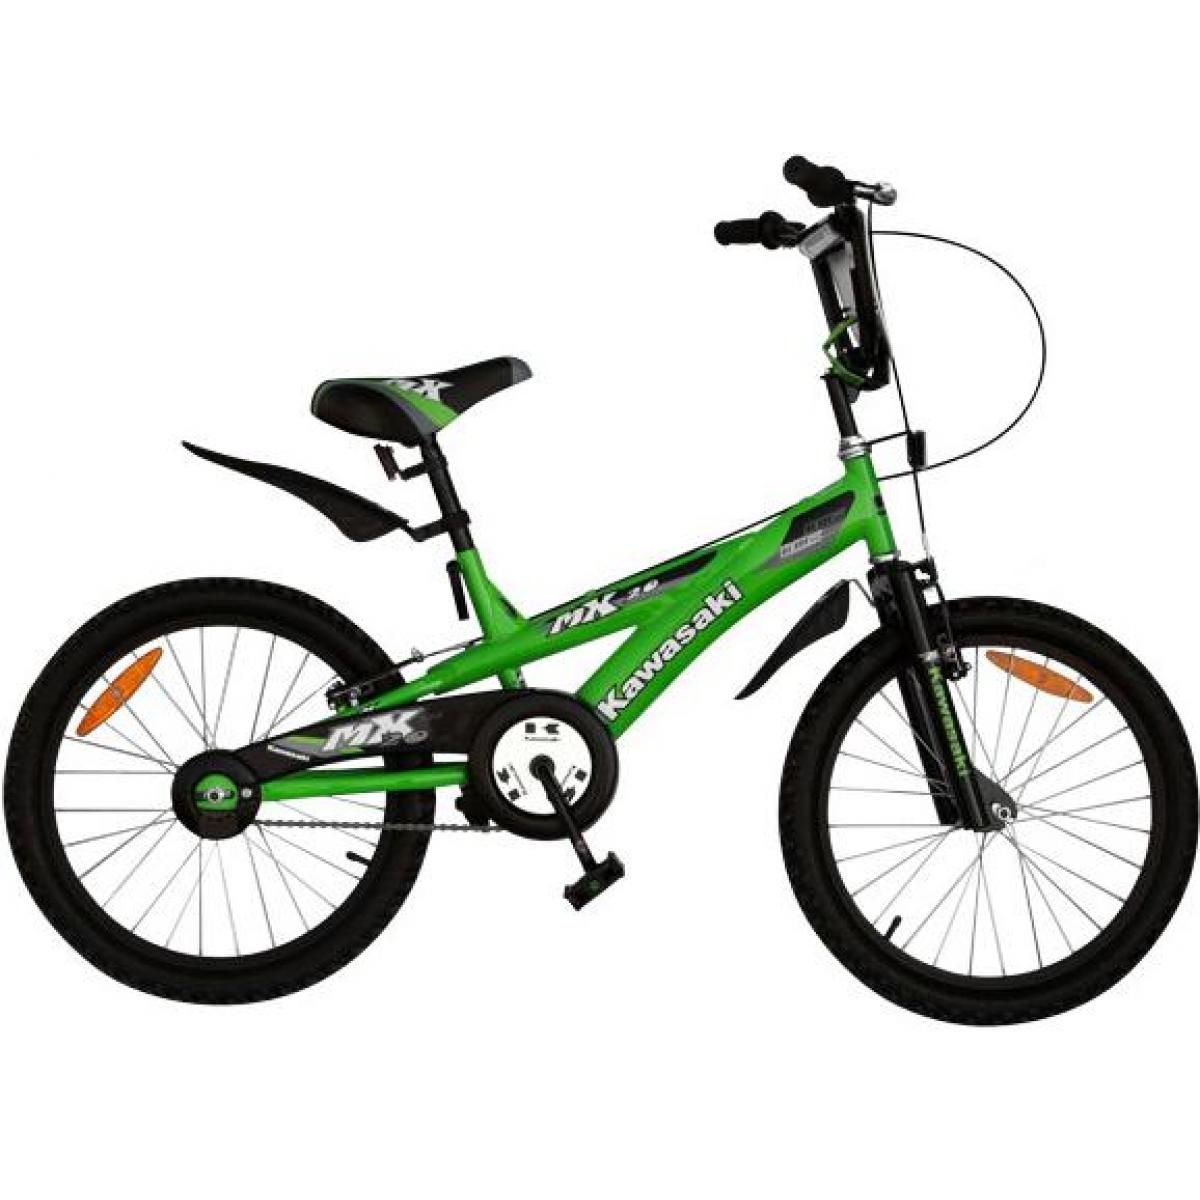 kinder fahrrad kawasaki dirt 16 zoll mx 16 kinderfahrrad. Black Bedroom Furniture Sets. Home Design Ideas